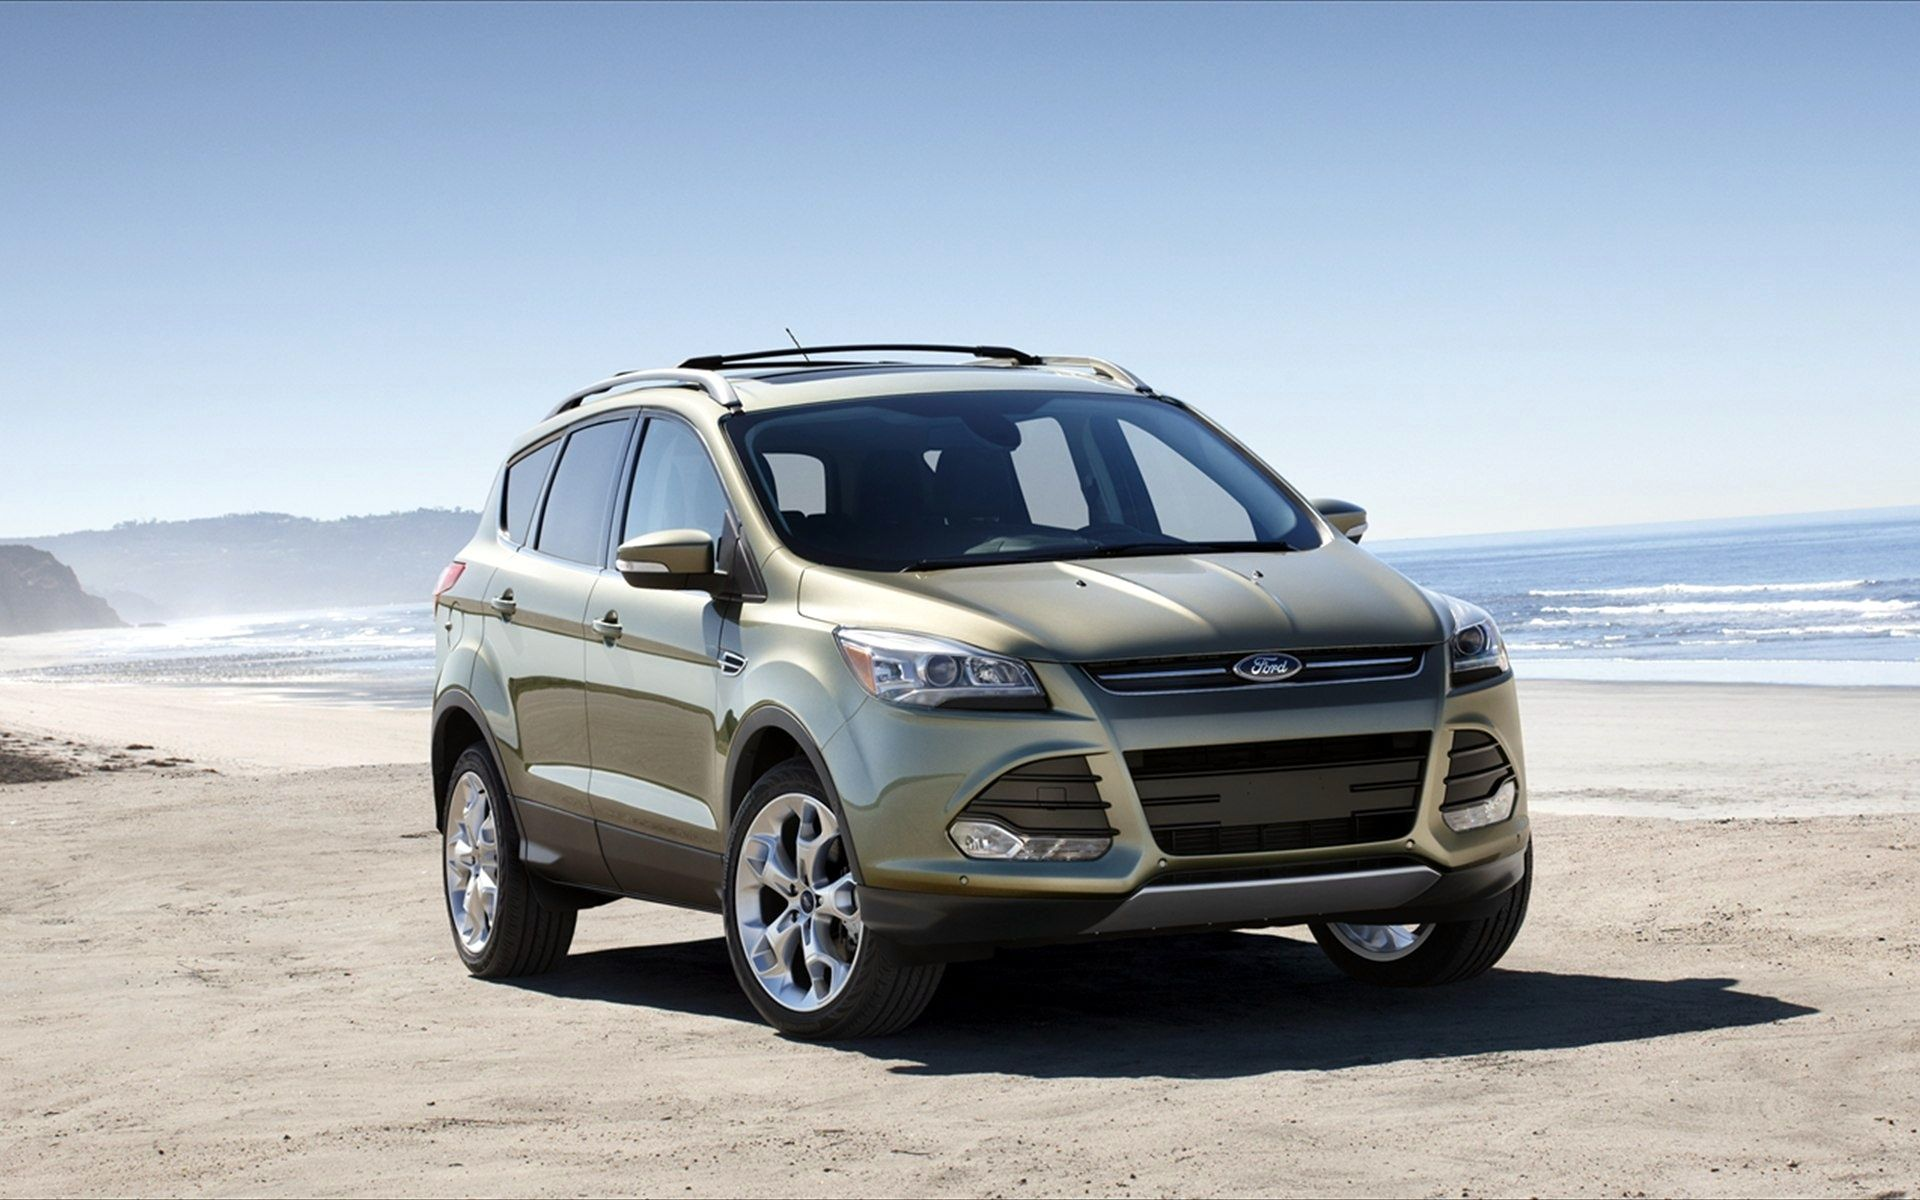 Ford Escape 2013 Picture All Cars Wallpapers Ford Escape Ford Escape Accessories 2016 Ford Escape